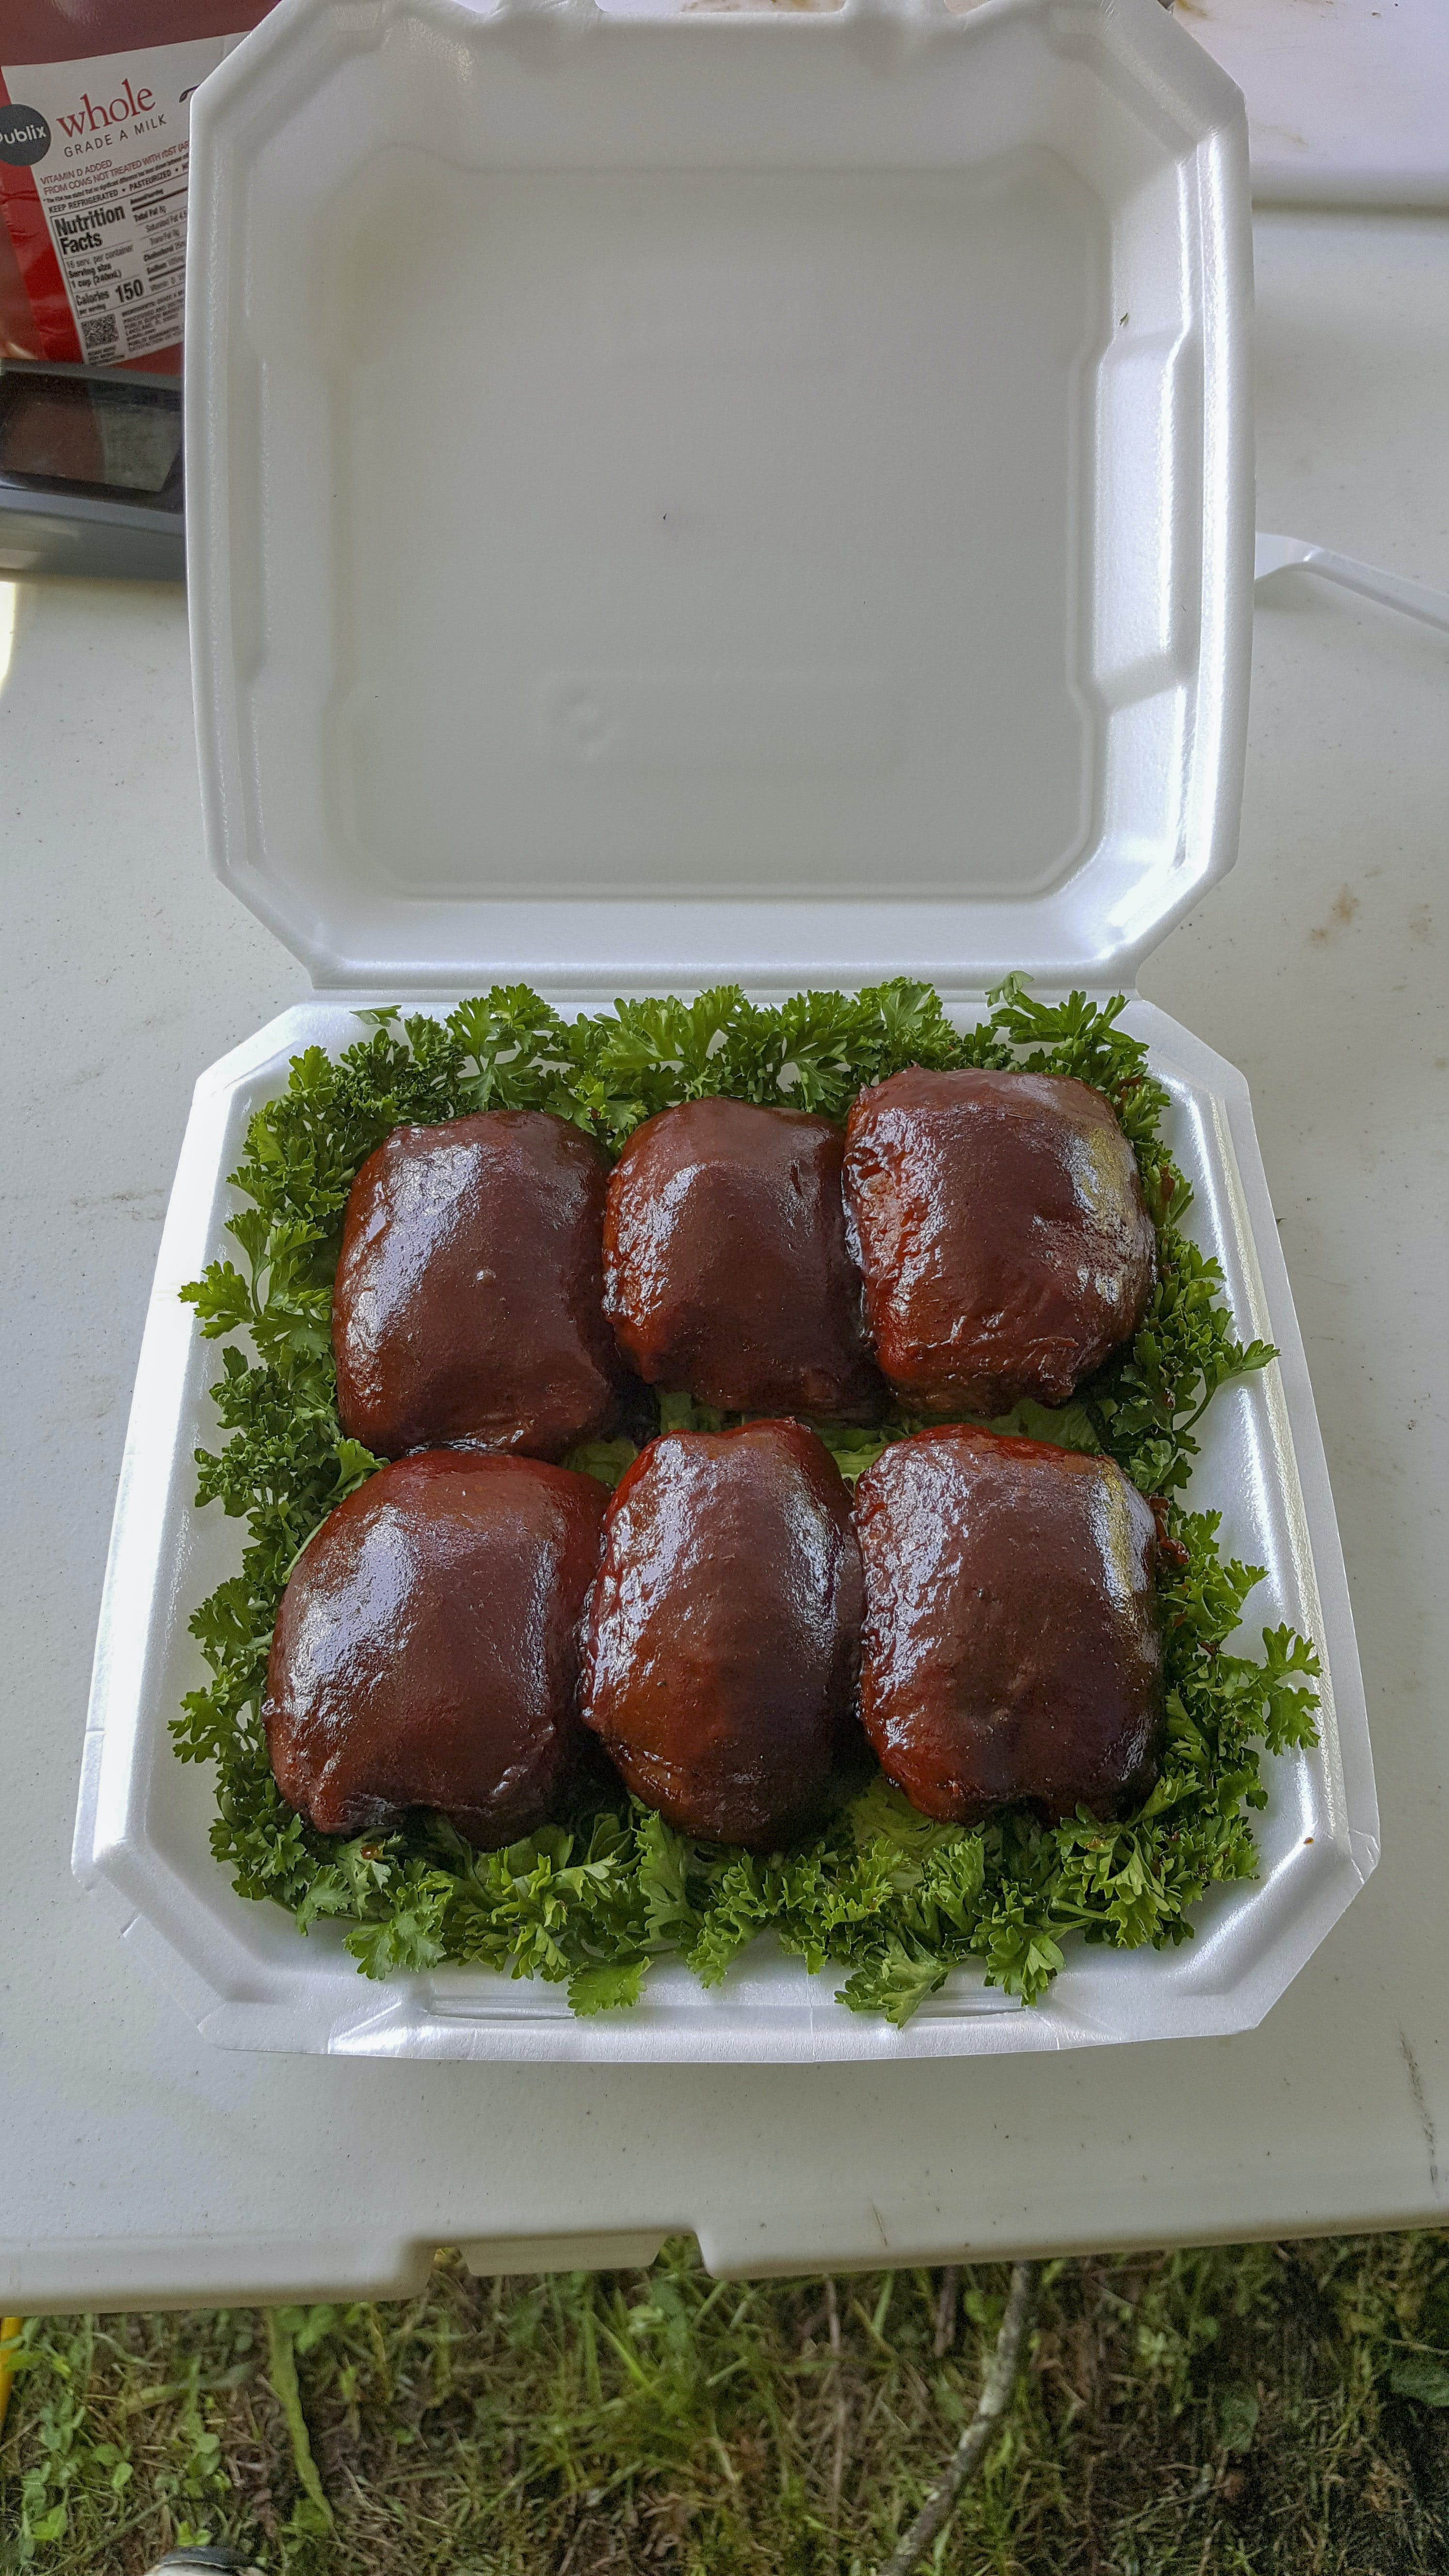 Free stock photo of bbq chicken, boxed chicken, competition chicken